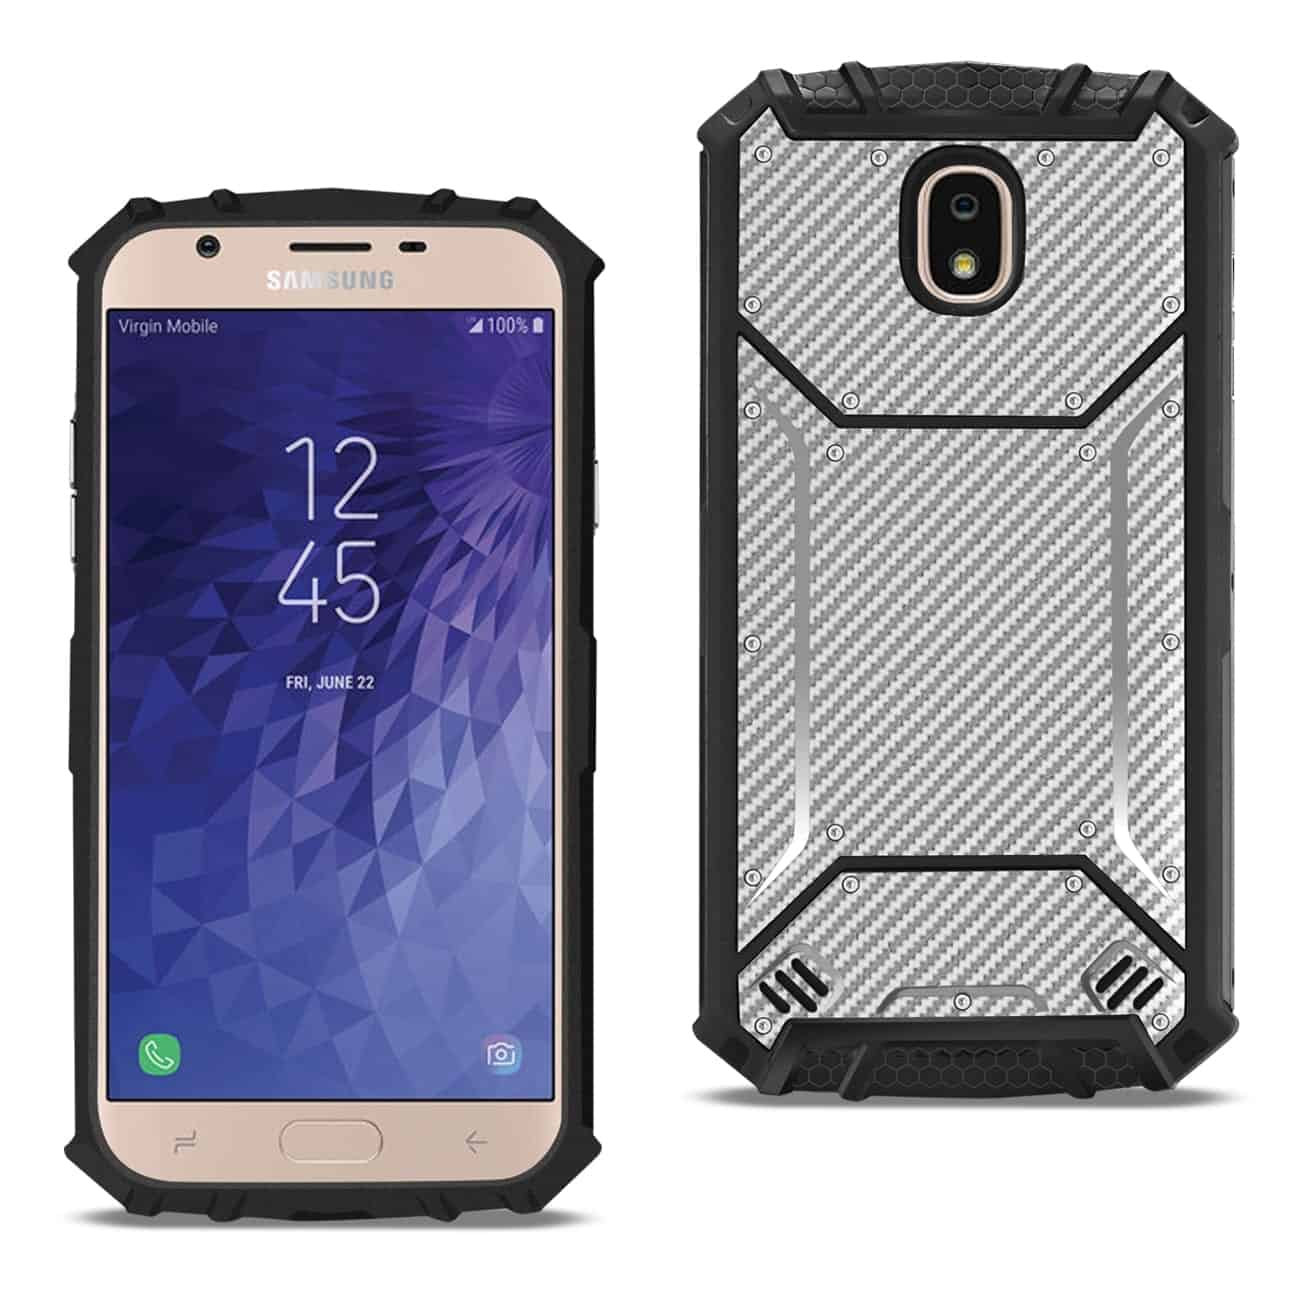 SAMSUNG GALAXY J7 (2018) Carbon Fiber Hard-shell Case In Gray